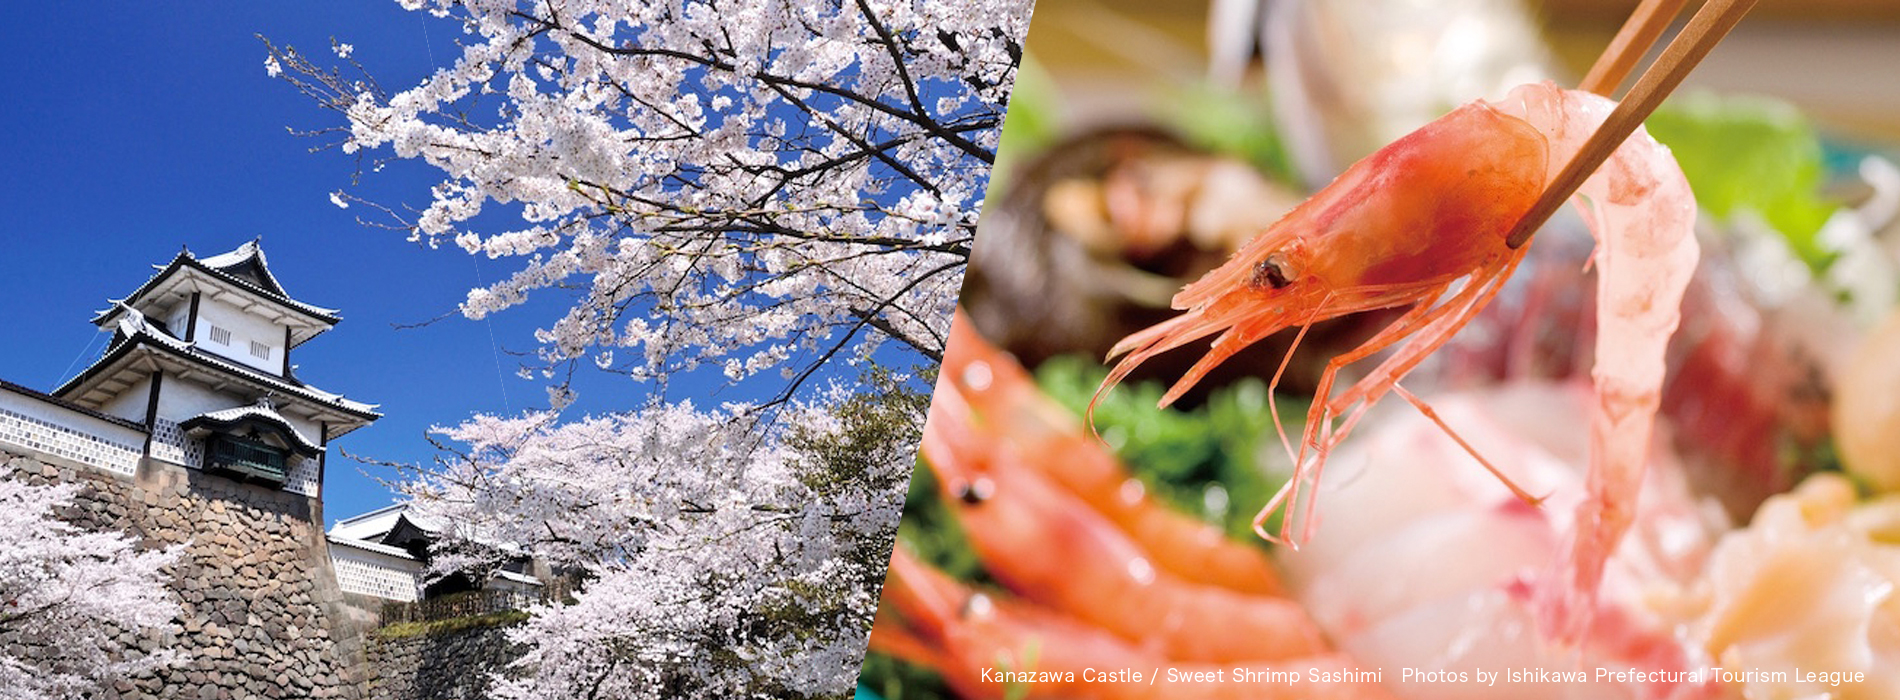 Kanazawa Castle / Sweet Shrimp Sashimi Photos by Ishikawa Prefectural Tourism League